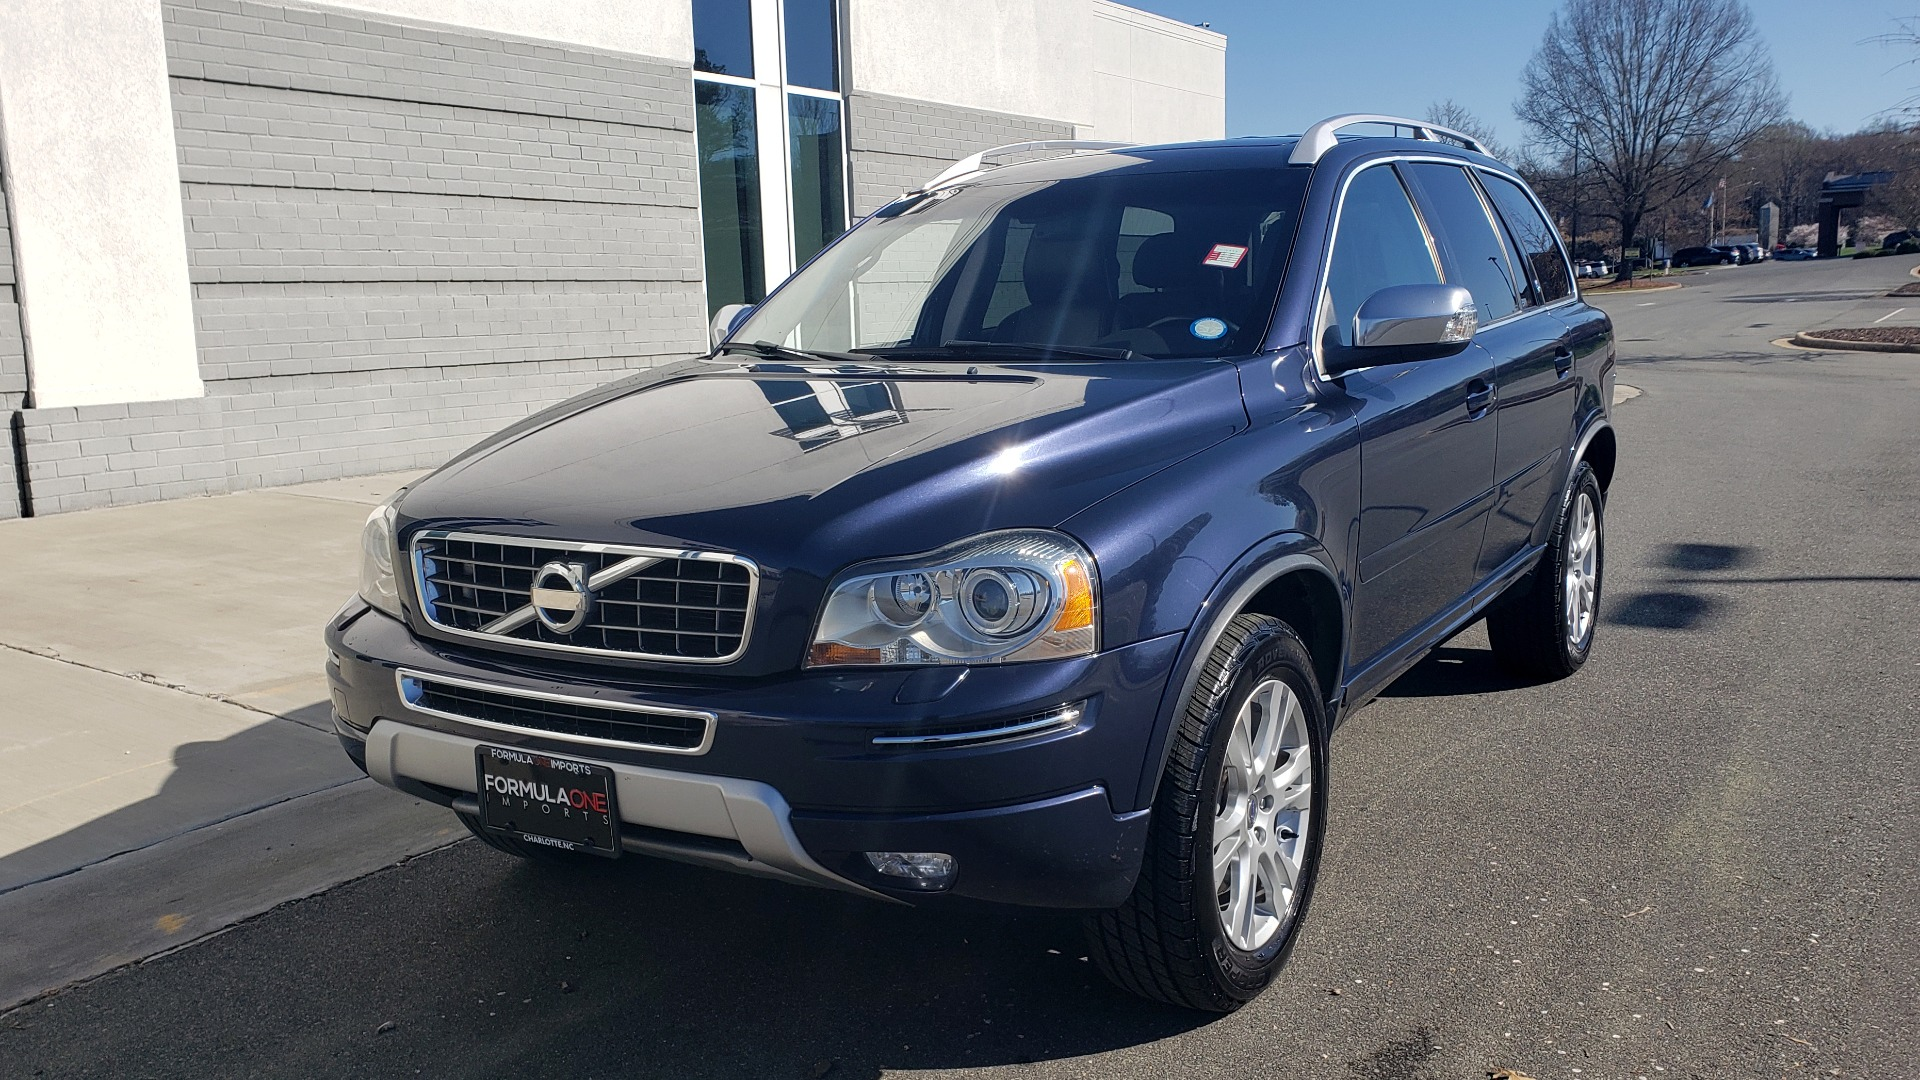 Used 2013 Volvo XC90 PREMIUM PLUS / AWD / HEATED SEATS / SUNROOF / 3-ROW / REARVIEW for sale $16,495 at Formula Imports in Charlotte NC 28227 5